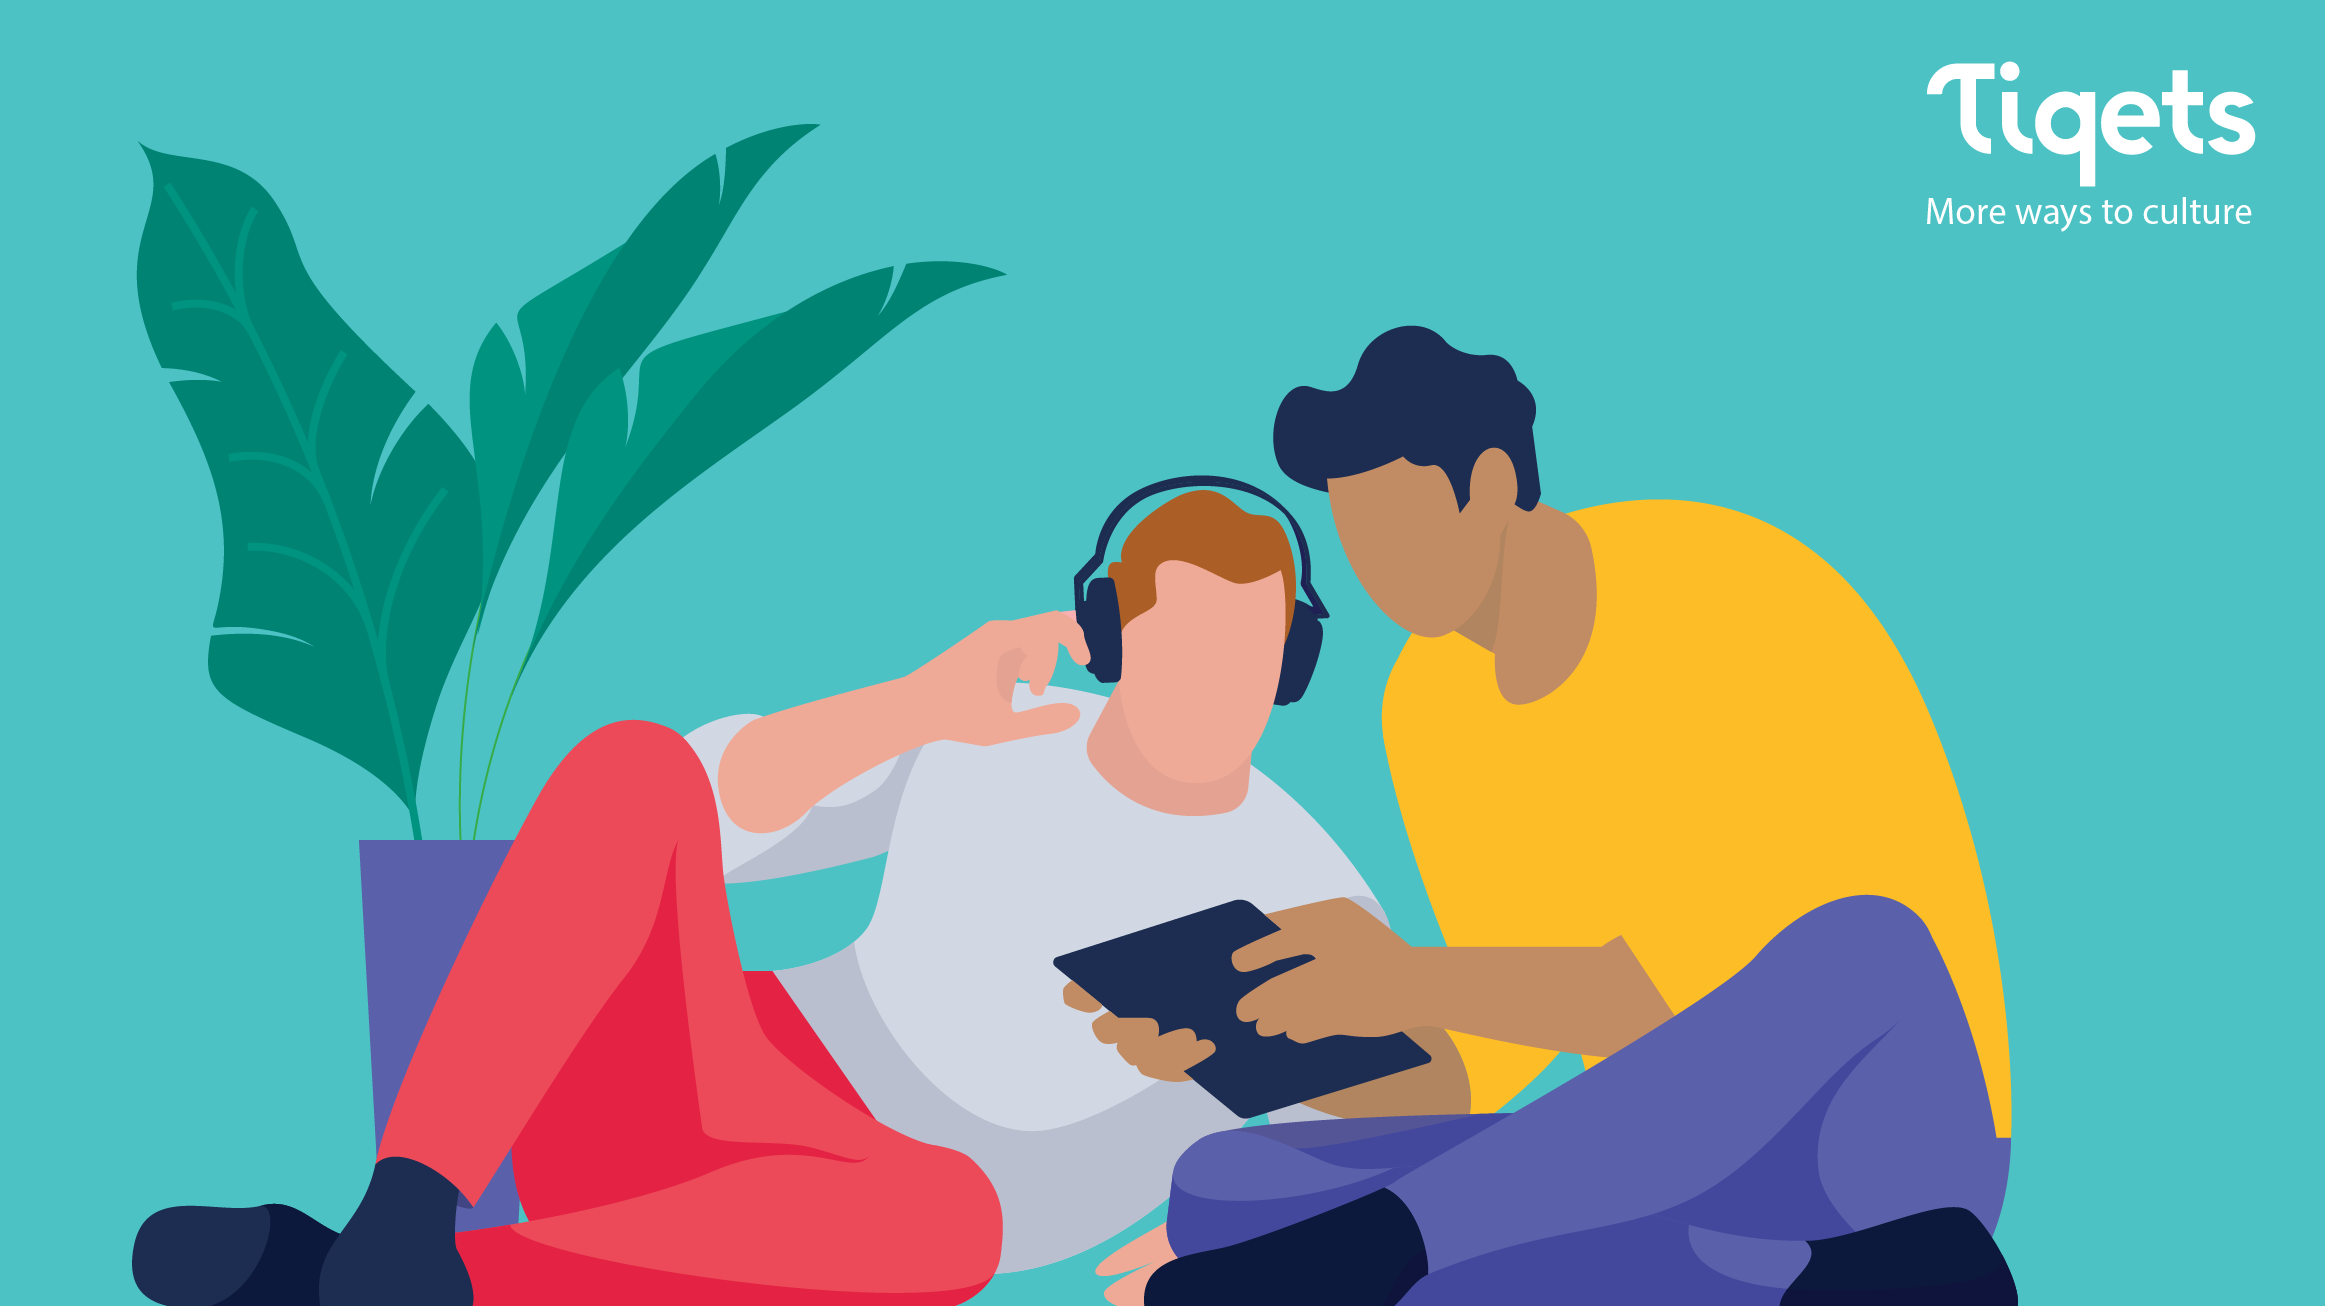 A graphic of two people sitting on the floor and looking at a tablet